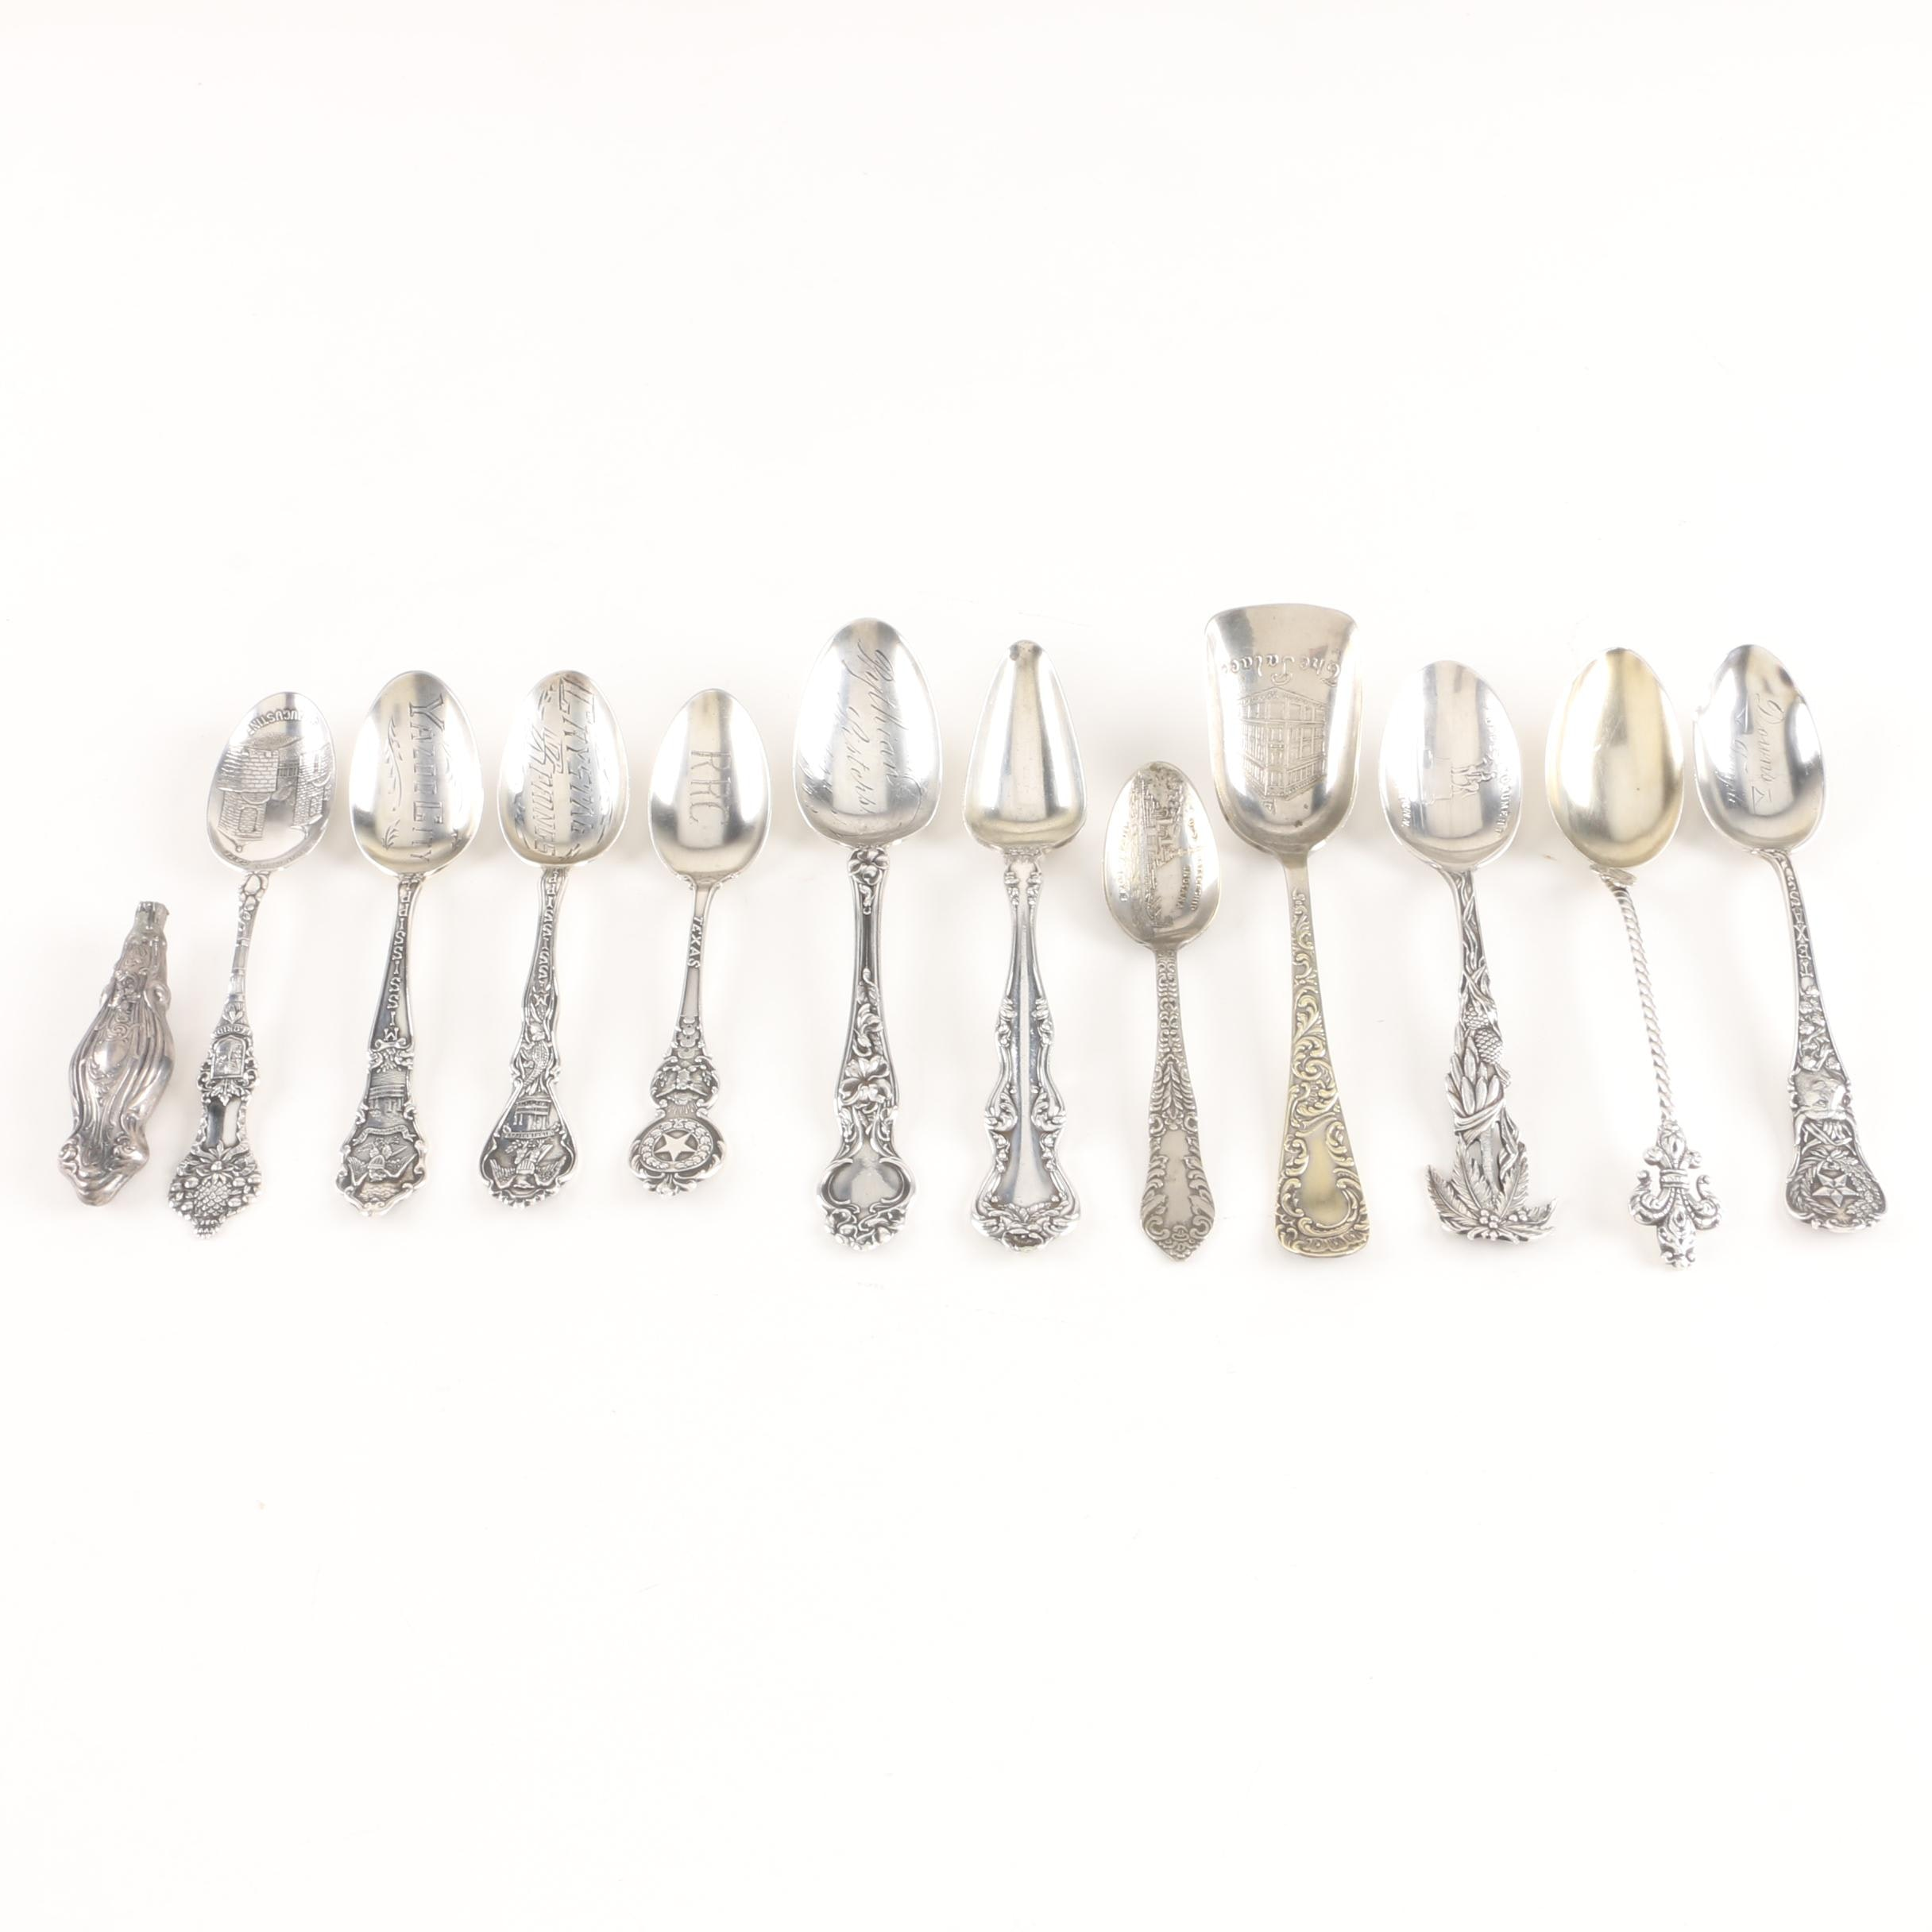 Sterling Silver and Silver Plate Collectible Spoons